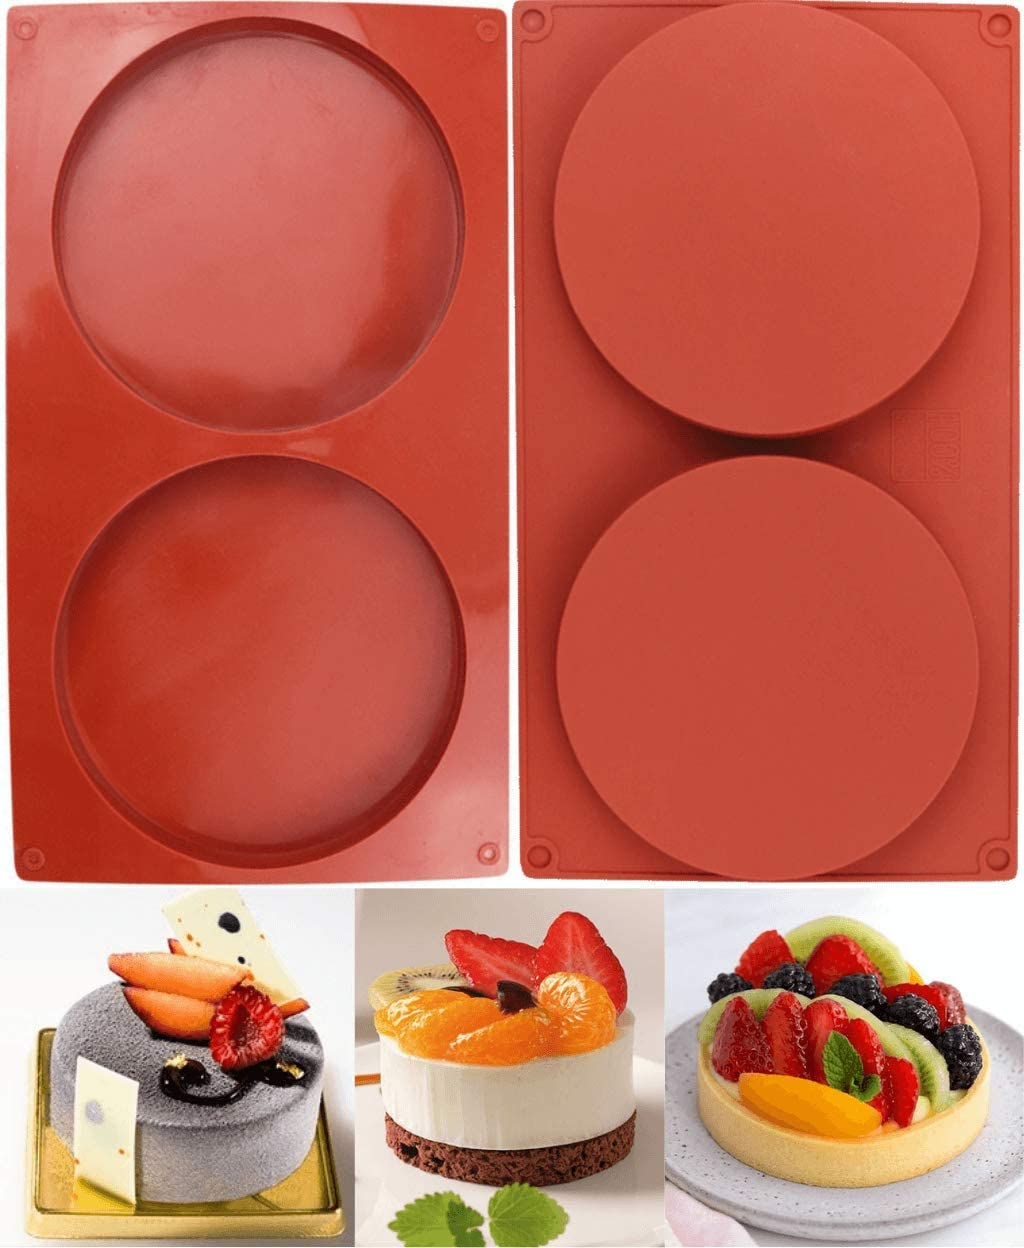 LARGEST! 2-Pack Silicone Mold Discs - Food Grade Biscuit Mold Set - Large 2 Holes Round Cylinder Chocolate Mold for Cookie Candy Jelly Pudding Cake Pie Tart Muffin Sandwiches Eggs Soap and More